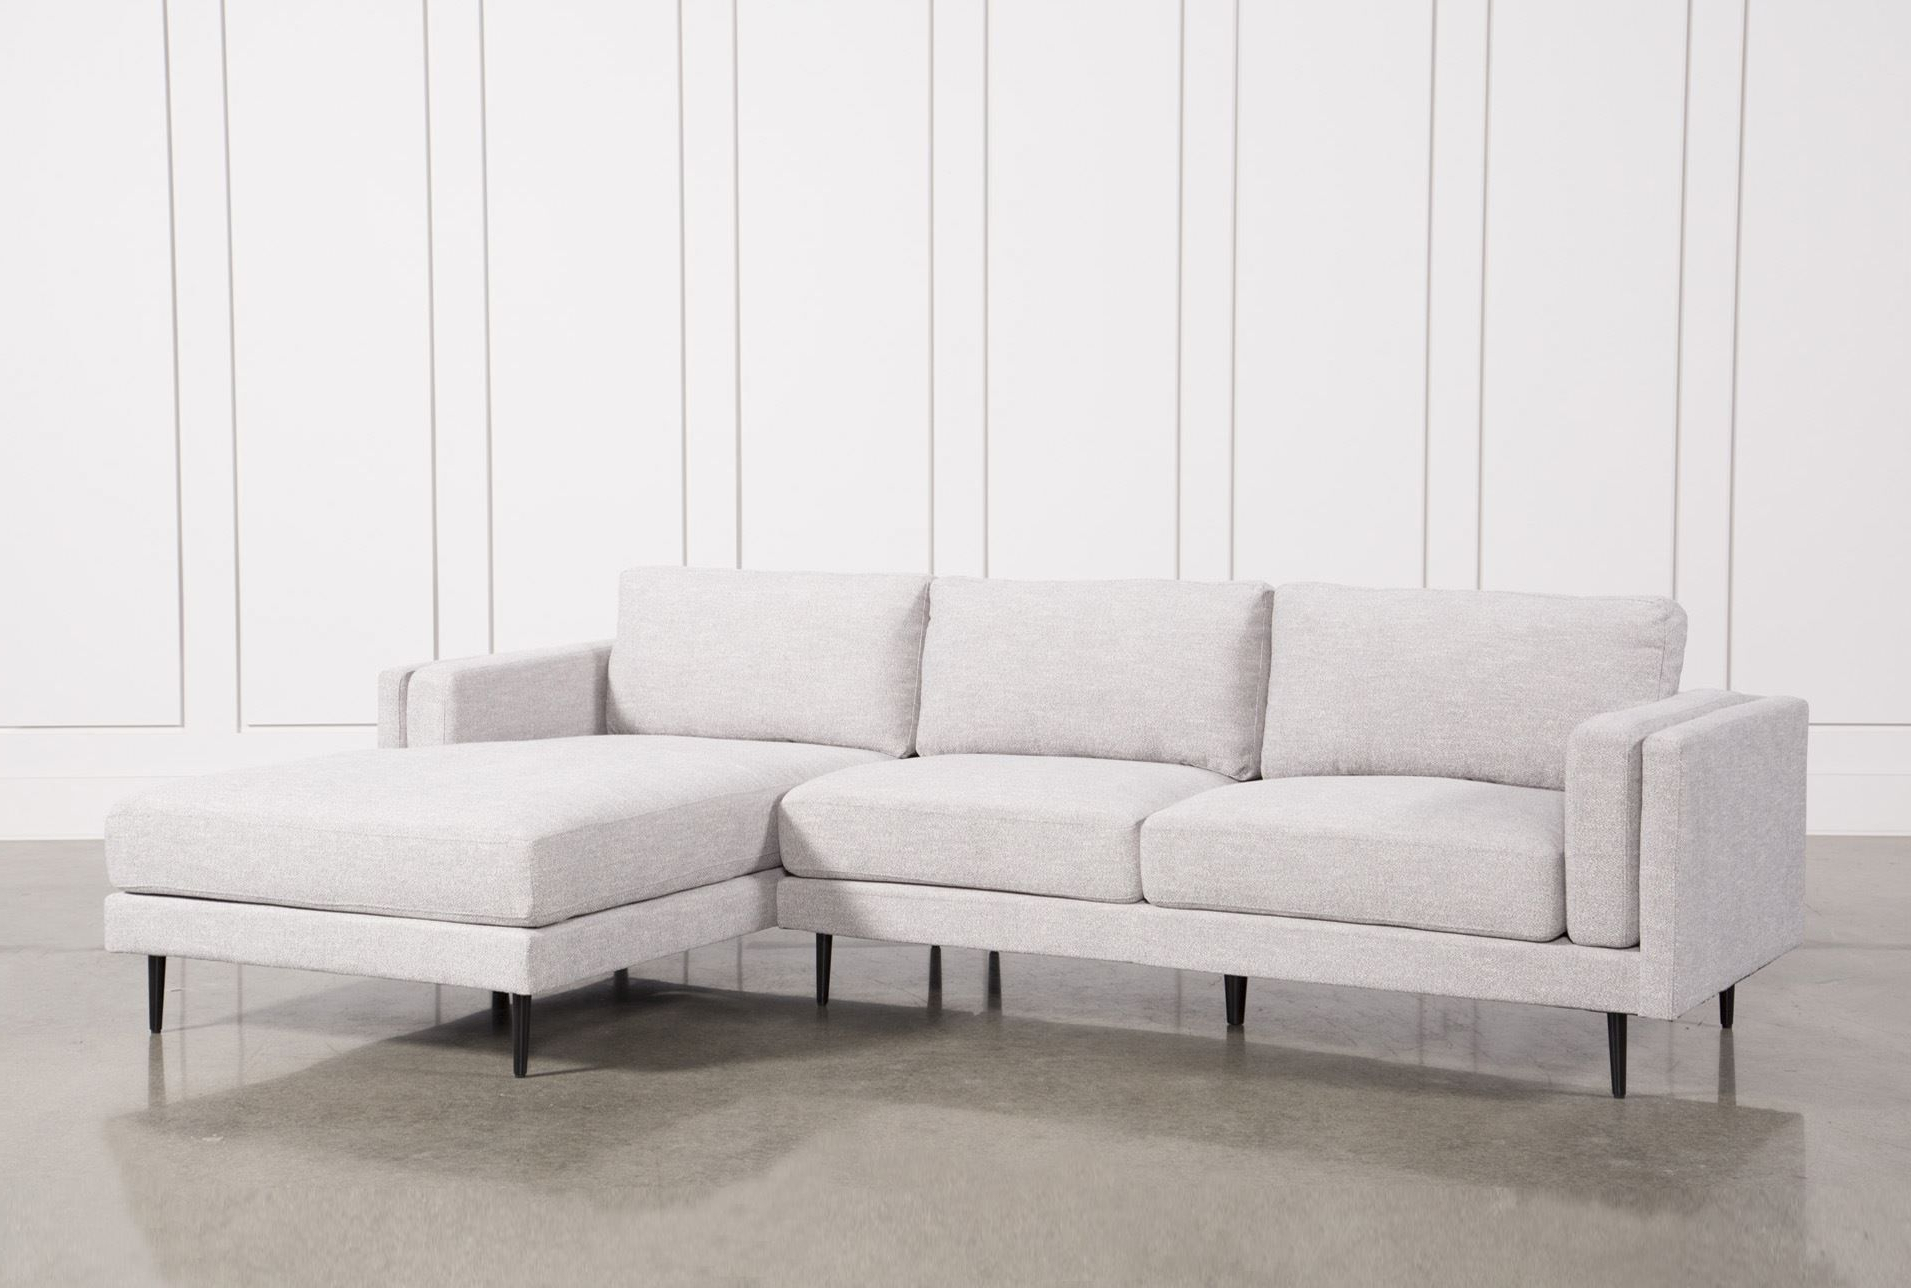 Most Current Lucy Grey 2 Piece Sleeper Sectionals With Raf Chaise Pertaining To Aquarius Light Grey 2 Piece Sectional W/raf Chaise (View 12 of 20)